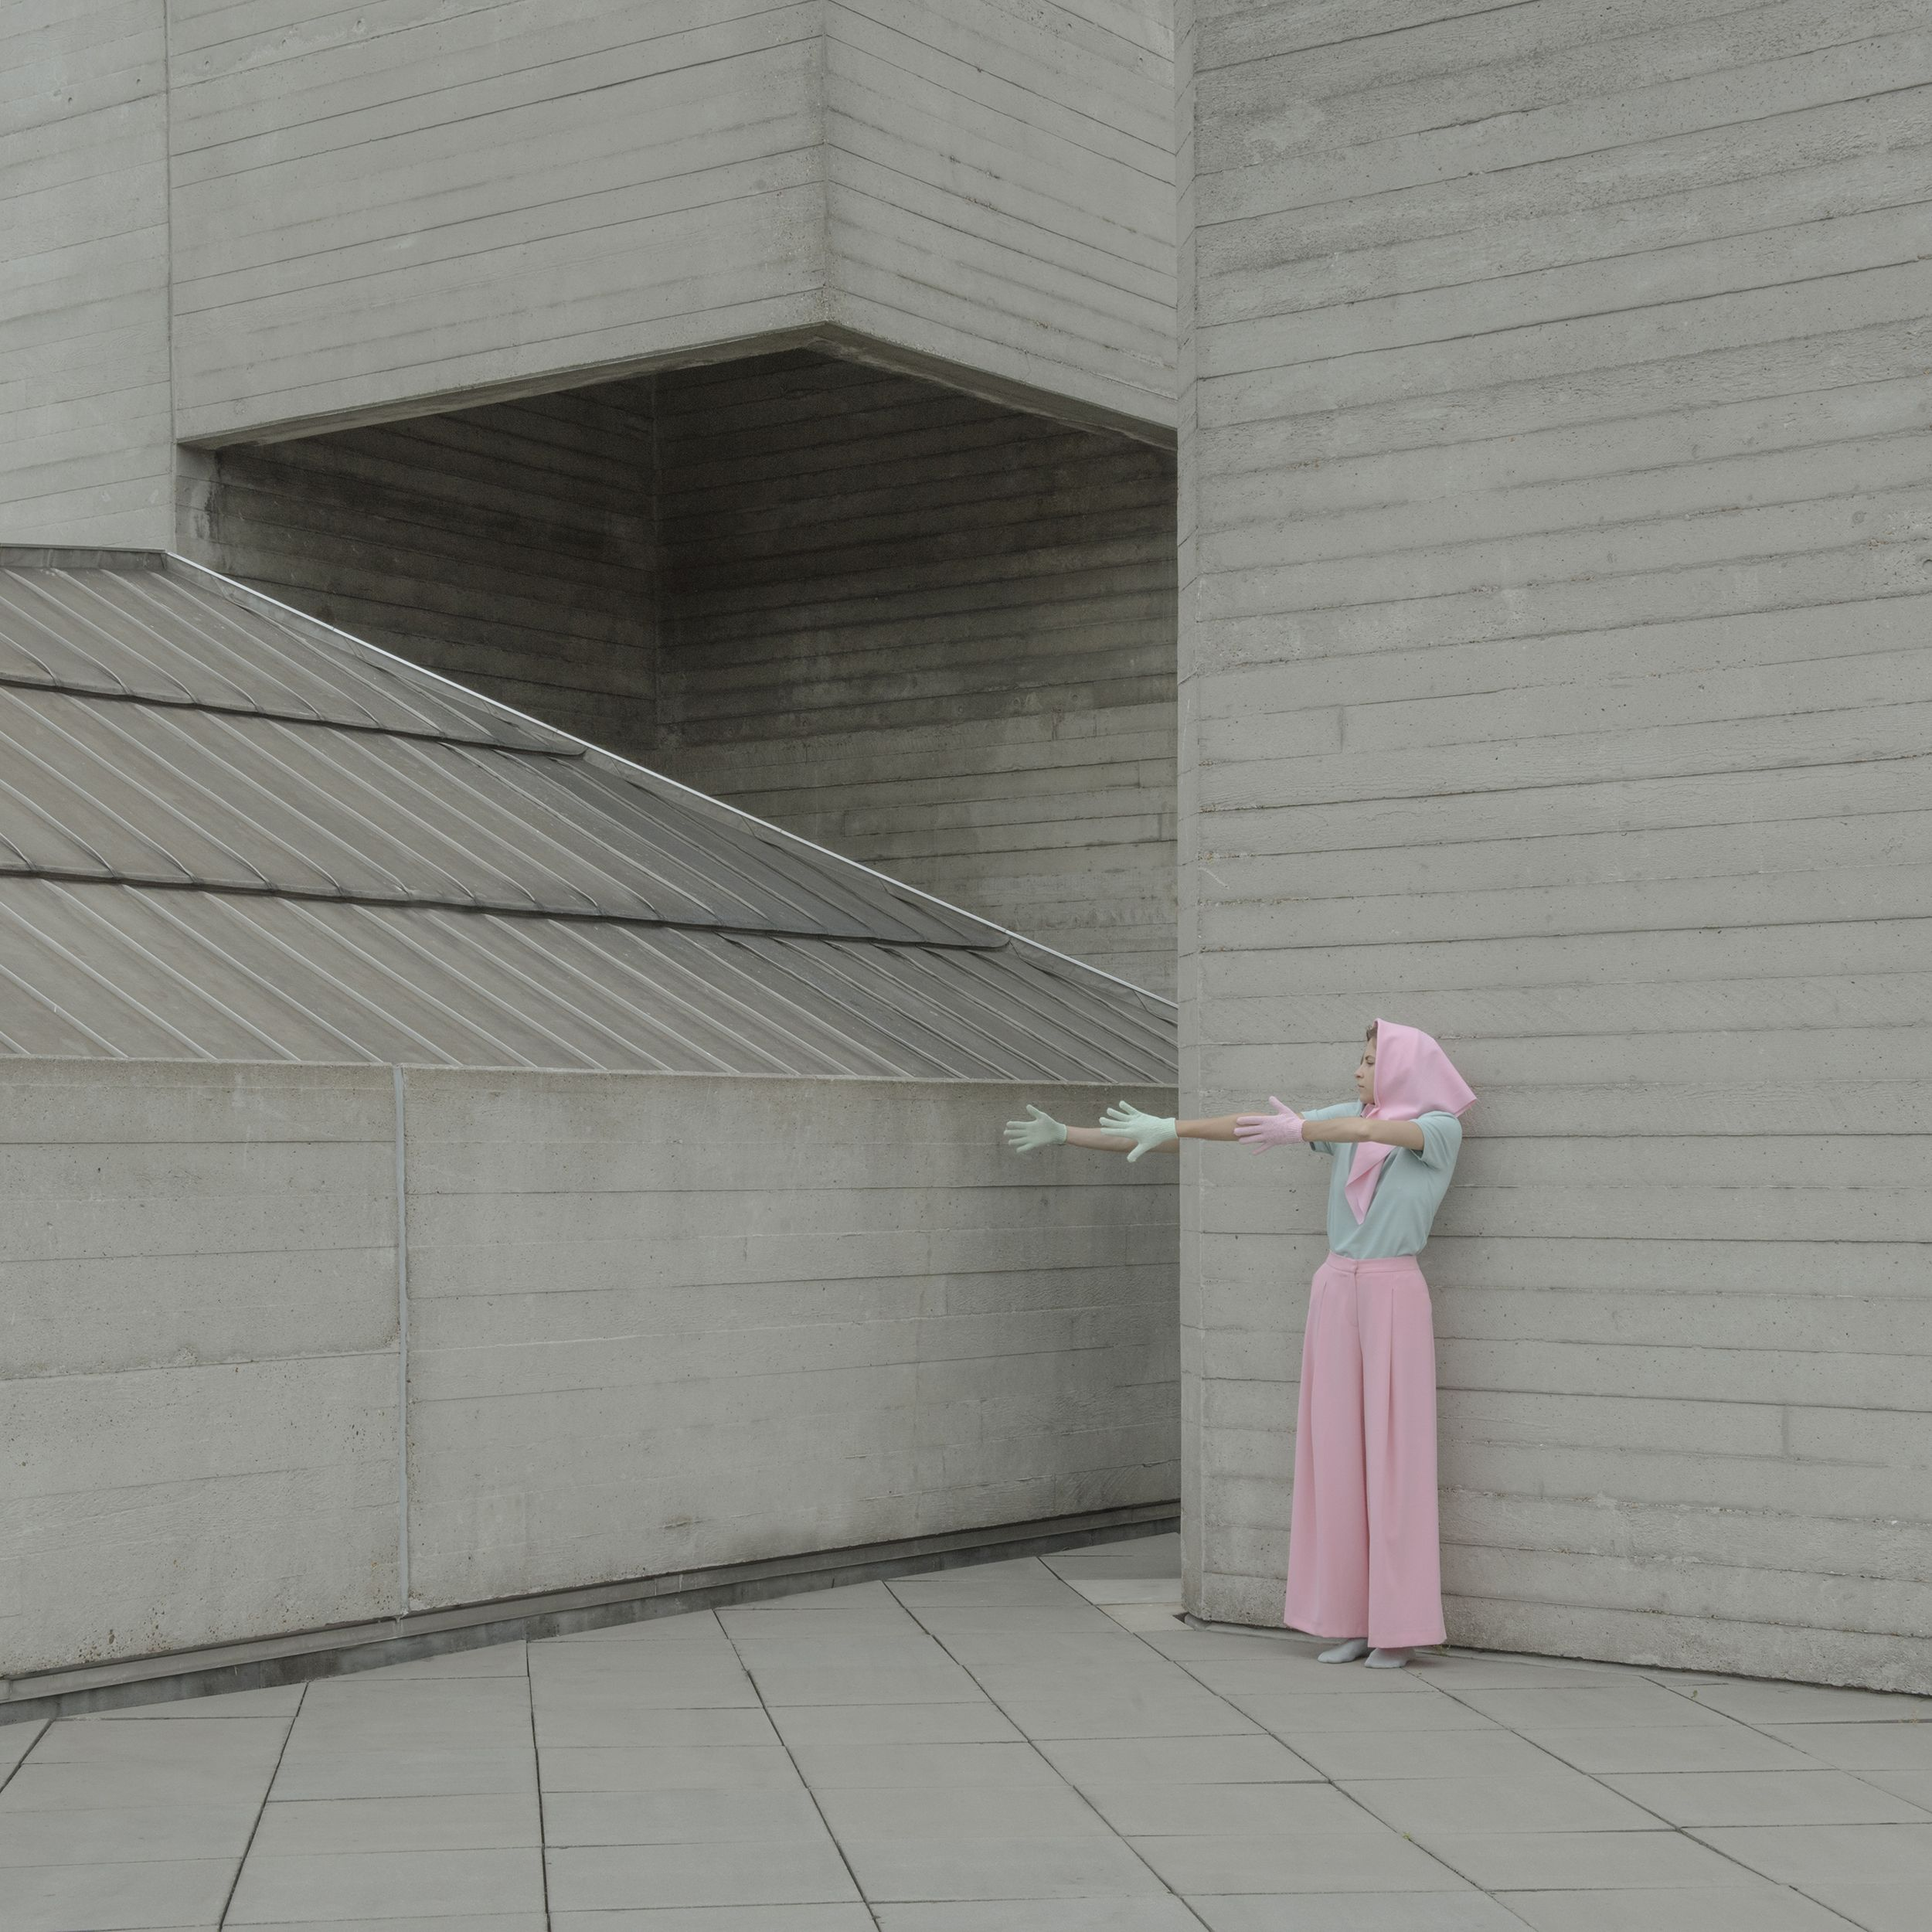 Hungarian photographer Marietta Varga offers us a new poetic series entitled Raw Hill. She wanted to pay tribute to the brutalist architecture that characterizes the architecture after World War II between 1950 and 1975. She created portraits of a duo in buildings like the National Theatre of Great Britain, Barbican Estate, and the Alexandra Road Estate, in London. The result : a collection of pictures that lets us dreaming with models that merge perfectly in the scenery.